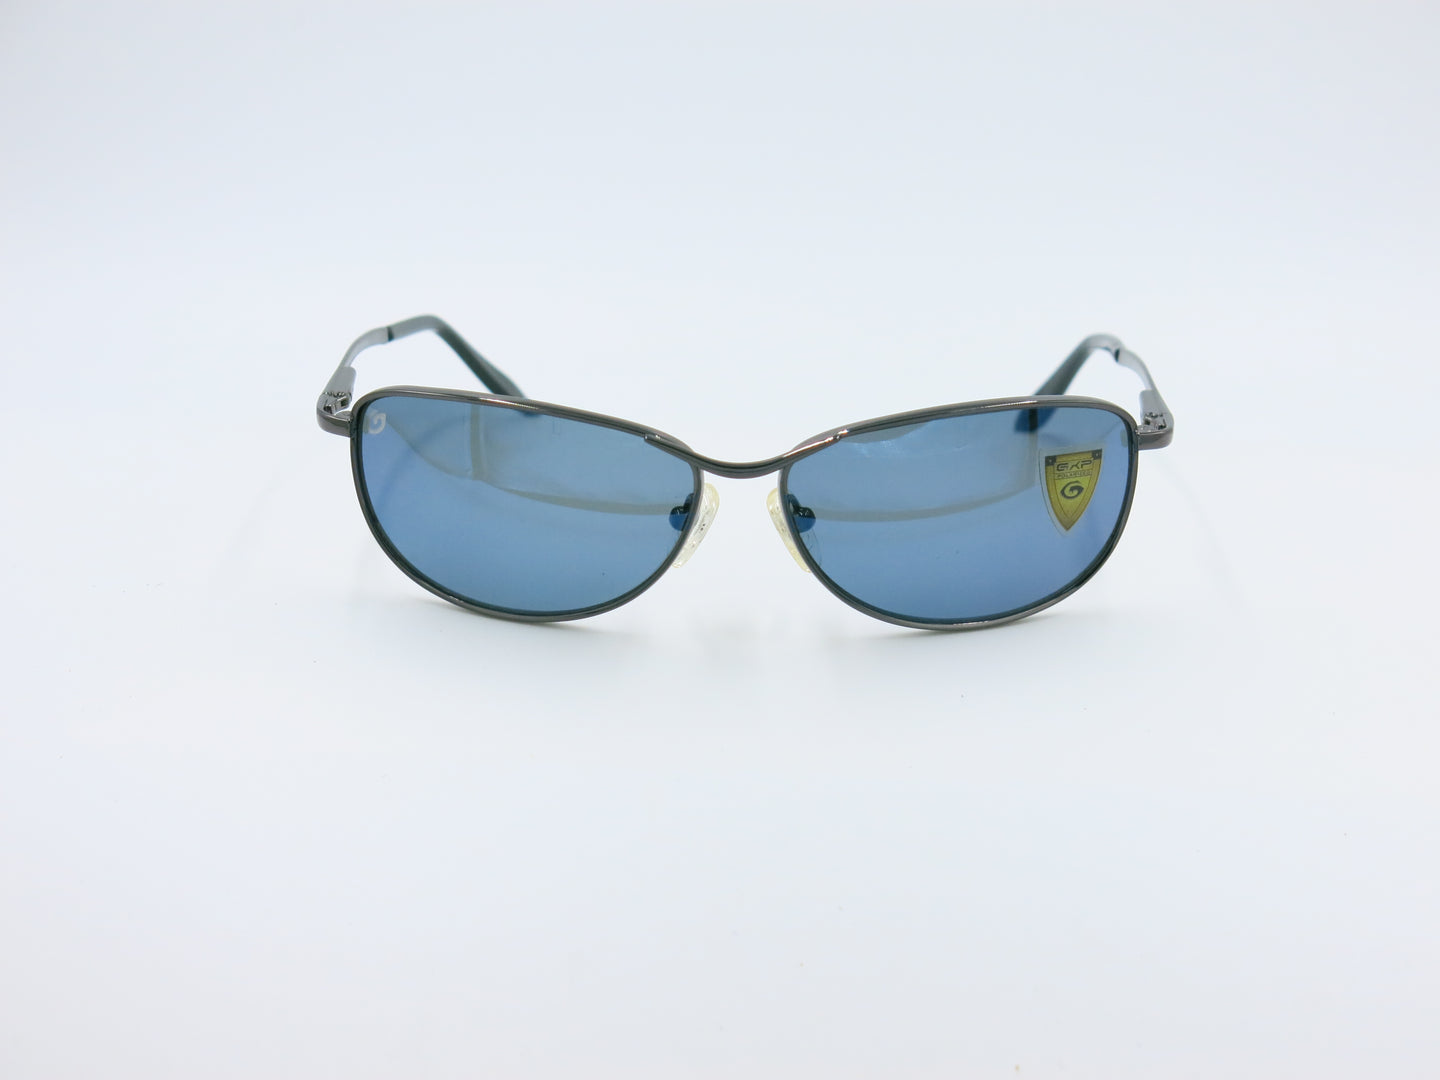 Gargoyles Sunglasses GXP 50-20 | Sunglasses by Gargoyles | Friedman & Sons